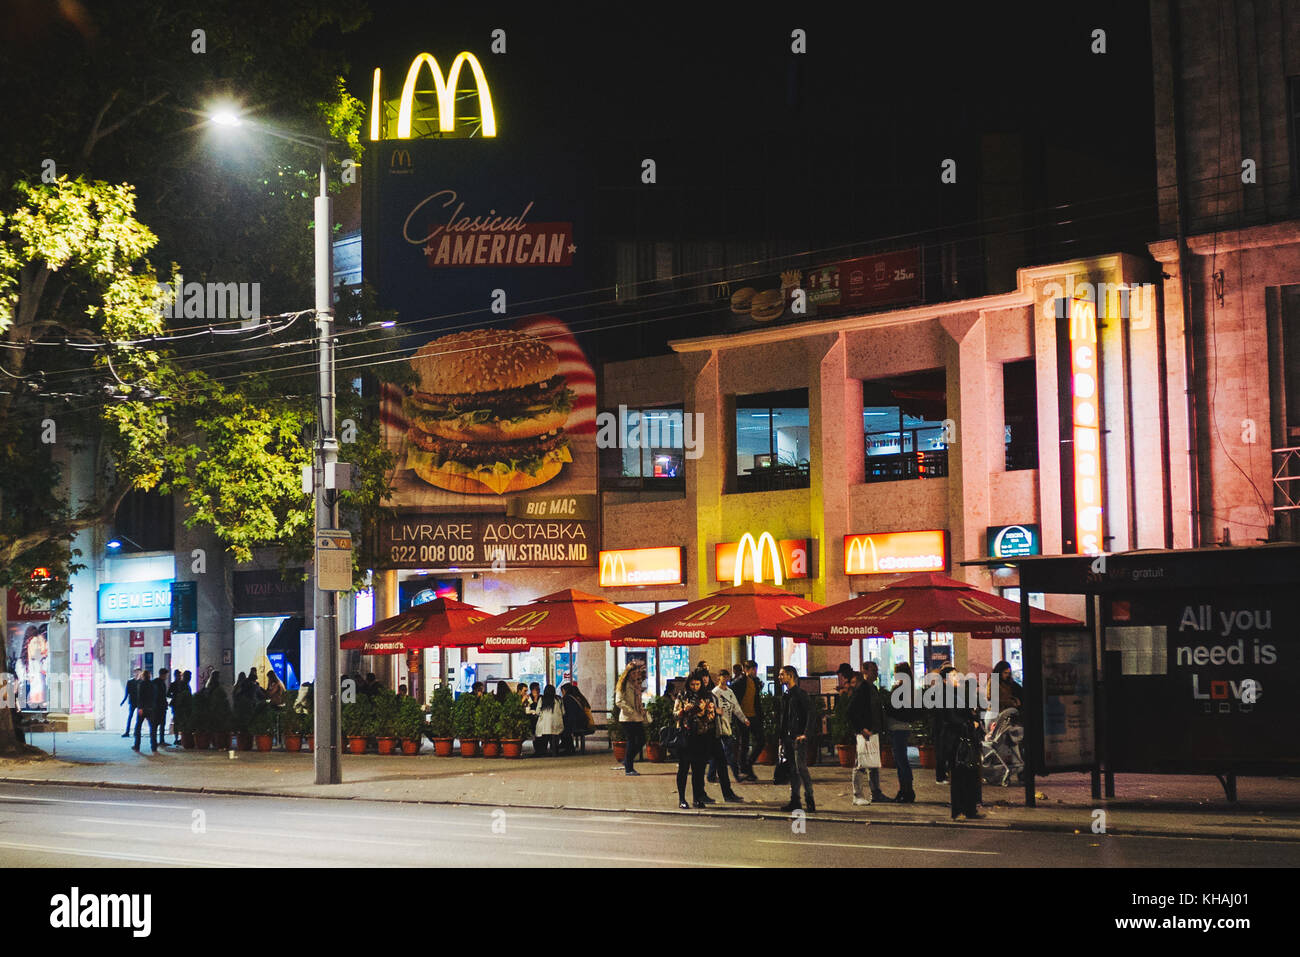 One of the few McDonald's restaurants in Chisinau, Moldova, advertises a 'Classical American' Big Mac - Stock Image